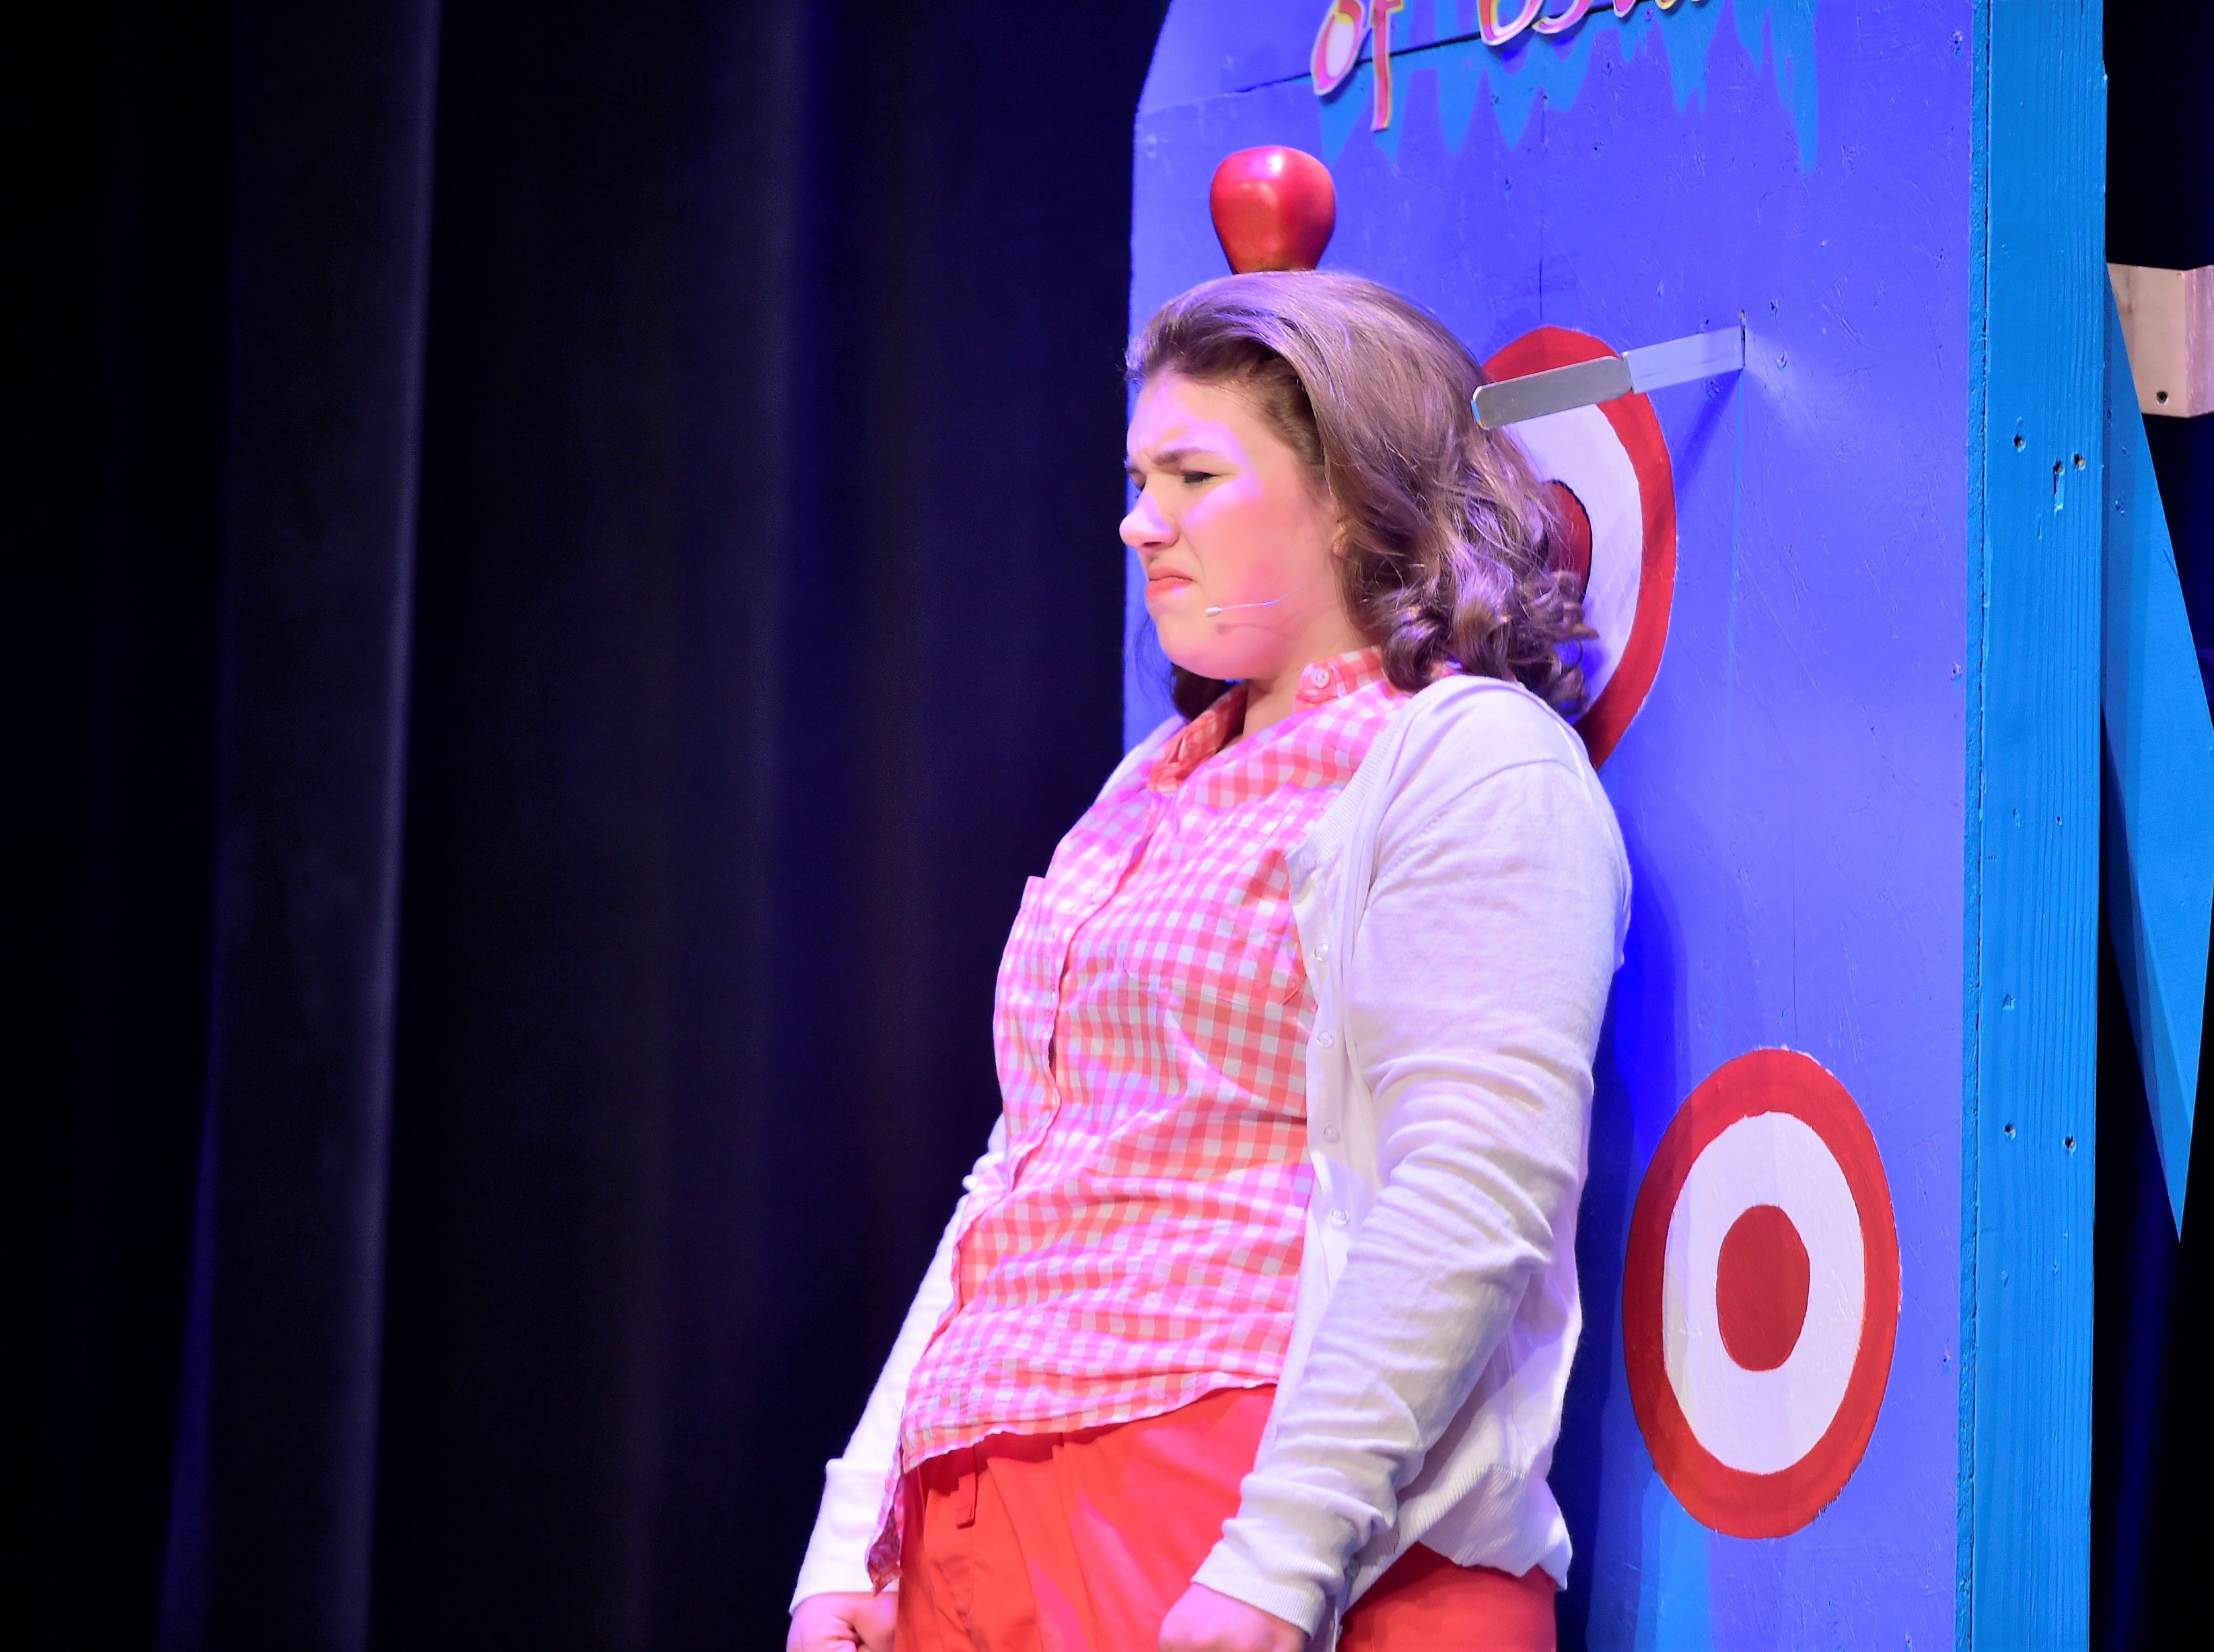 """Taylor Stevens, as Babe, tenses as the not-pictured Hines, played by Mason Swankler, throws knives toward her in a scene from """"The Pajama Game,"""" on Sunday, March 10, 2019, at Waynesboro Area Senior High School. The musical, based on the 1953 novel, """"7 1/2 Cents"""" by Richard Bissell, tells the story of a pajama factory where workers are fighting for a raise of 7 1/2 cents. Showtimes for Waynesboro Area School District's All-School Production of """"The Pajama Game"""" are 7 p.m. Friday and Saturday, March 15 and 16, and 2 p.m. Sunday, March 17 in the high school auditorium. For choose-your-seat tickets, $10 for adults and $6 for children under 12, go to https://washsmusic.ticketleap.com/the-pajama-game/. General admission tickets will also be sold at the door."""